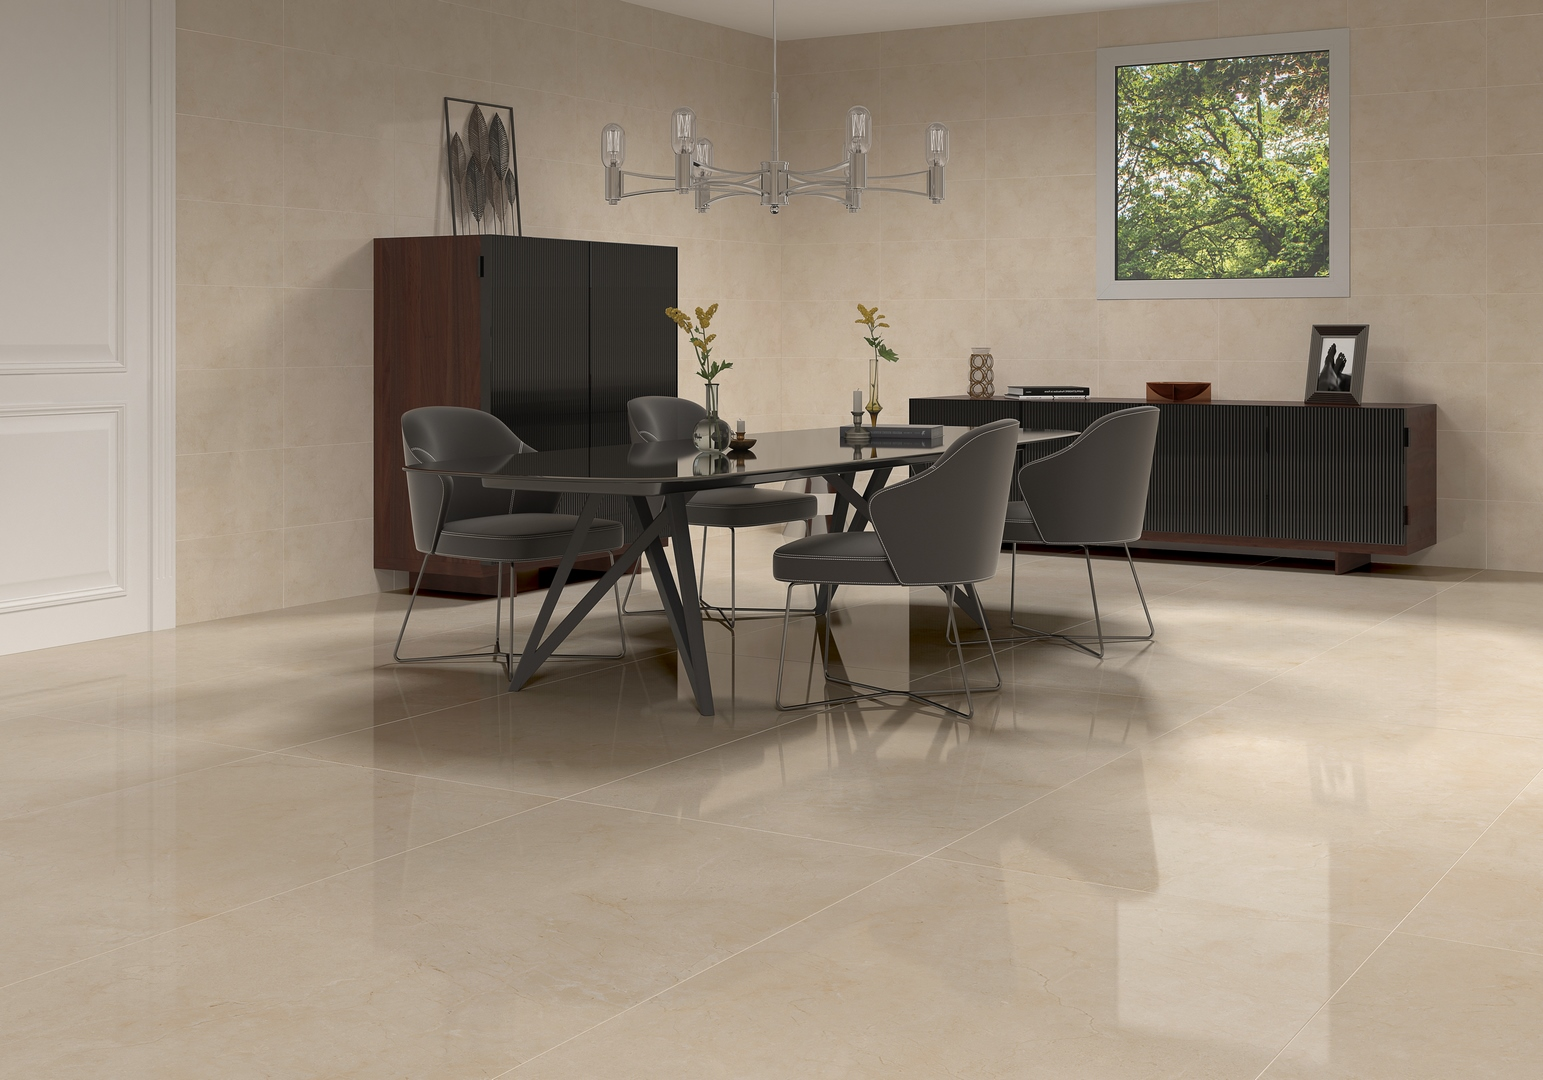 Emejing carrelage beige 60x60 images for Carrelage 60x60 brillant